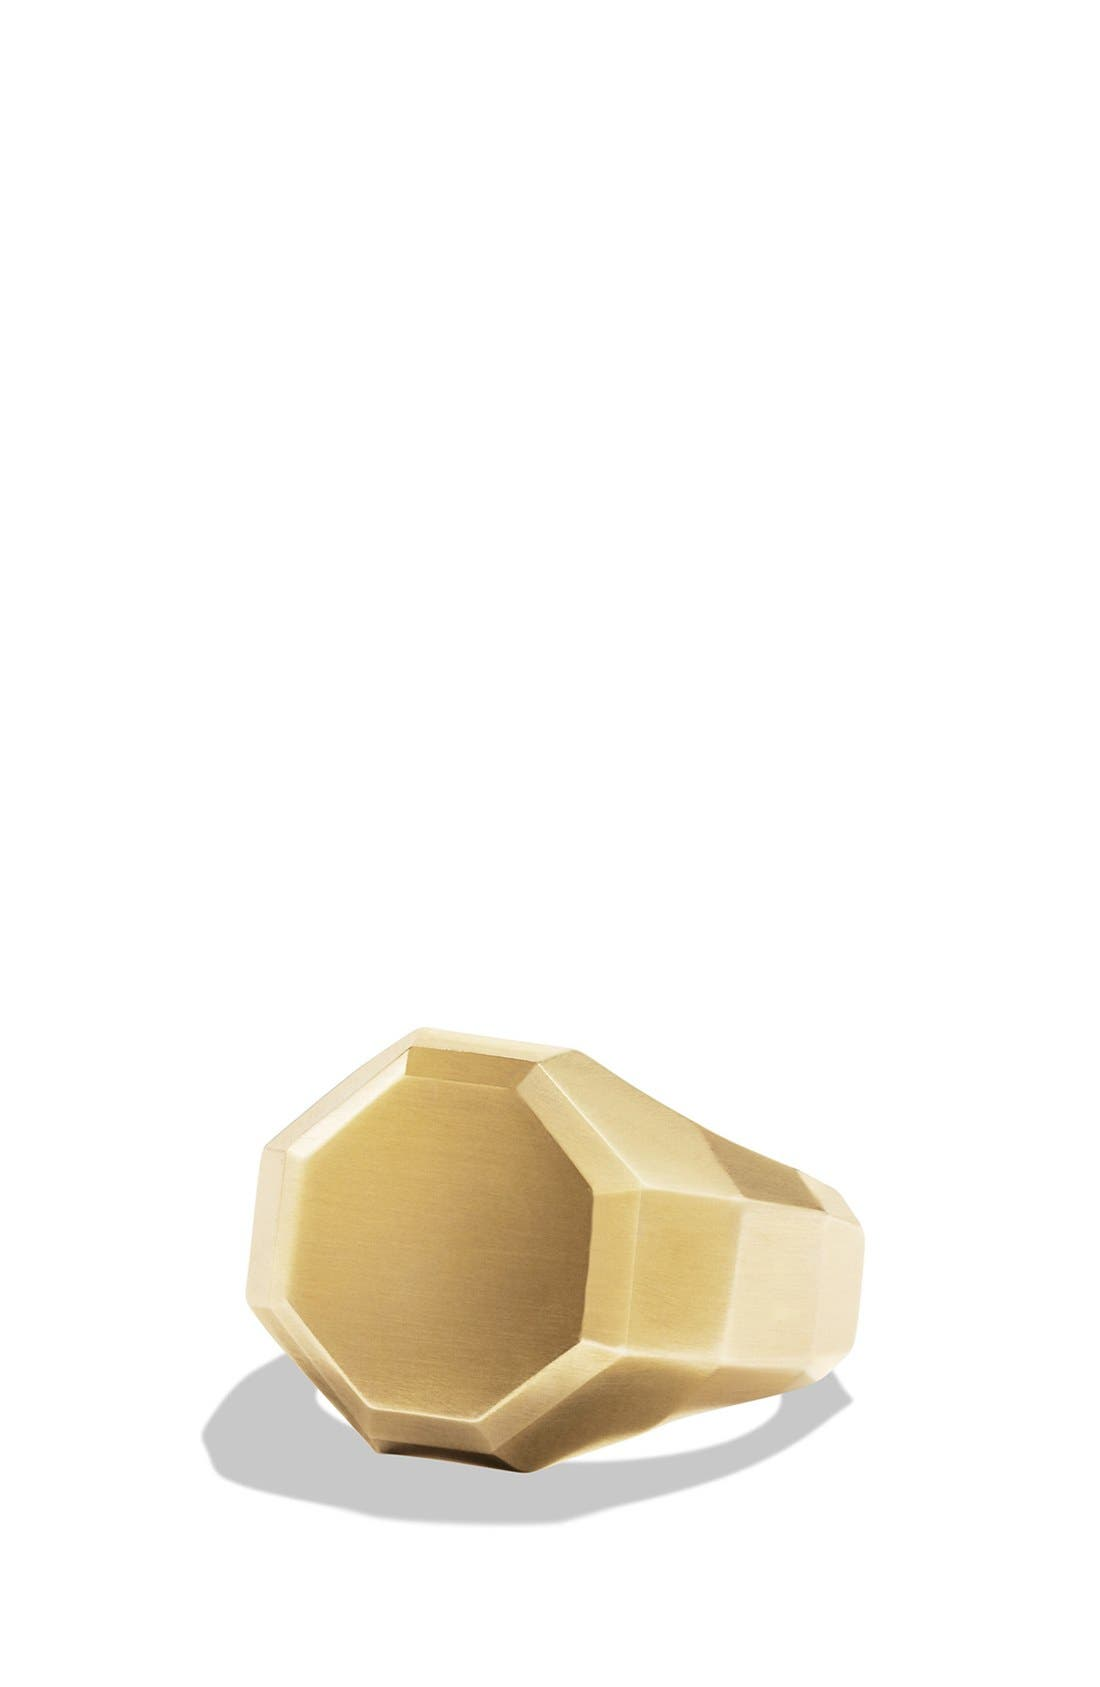 Main Image - David Yurman 'Faceted' Signet Ring with 18k Gold